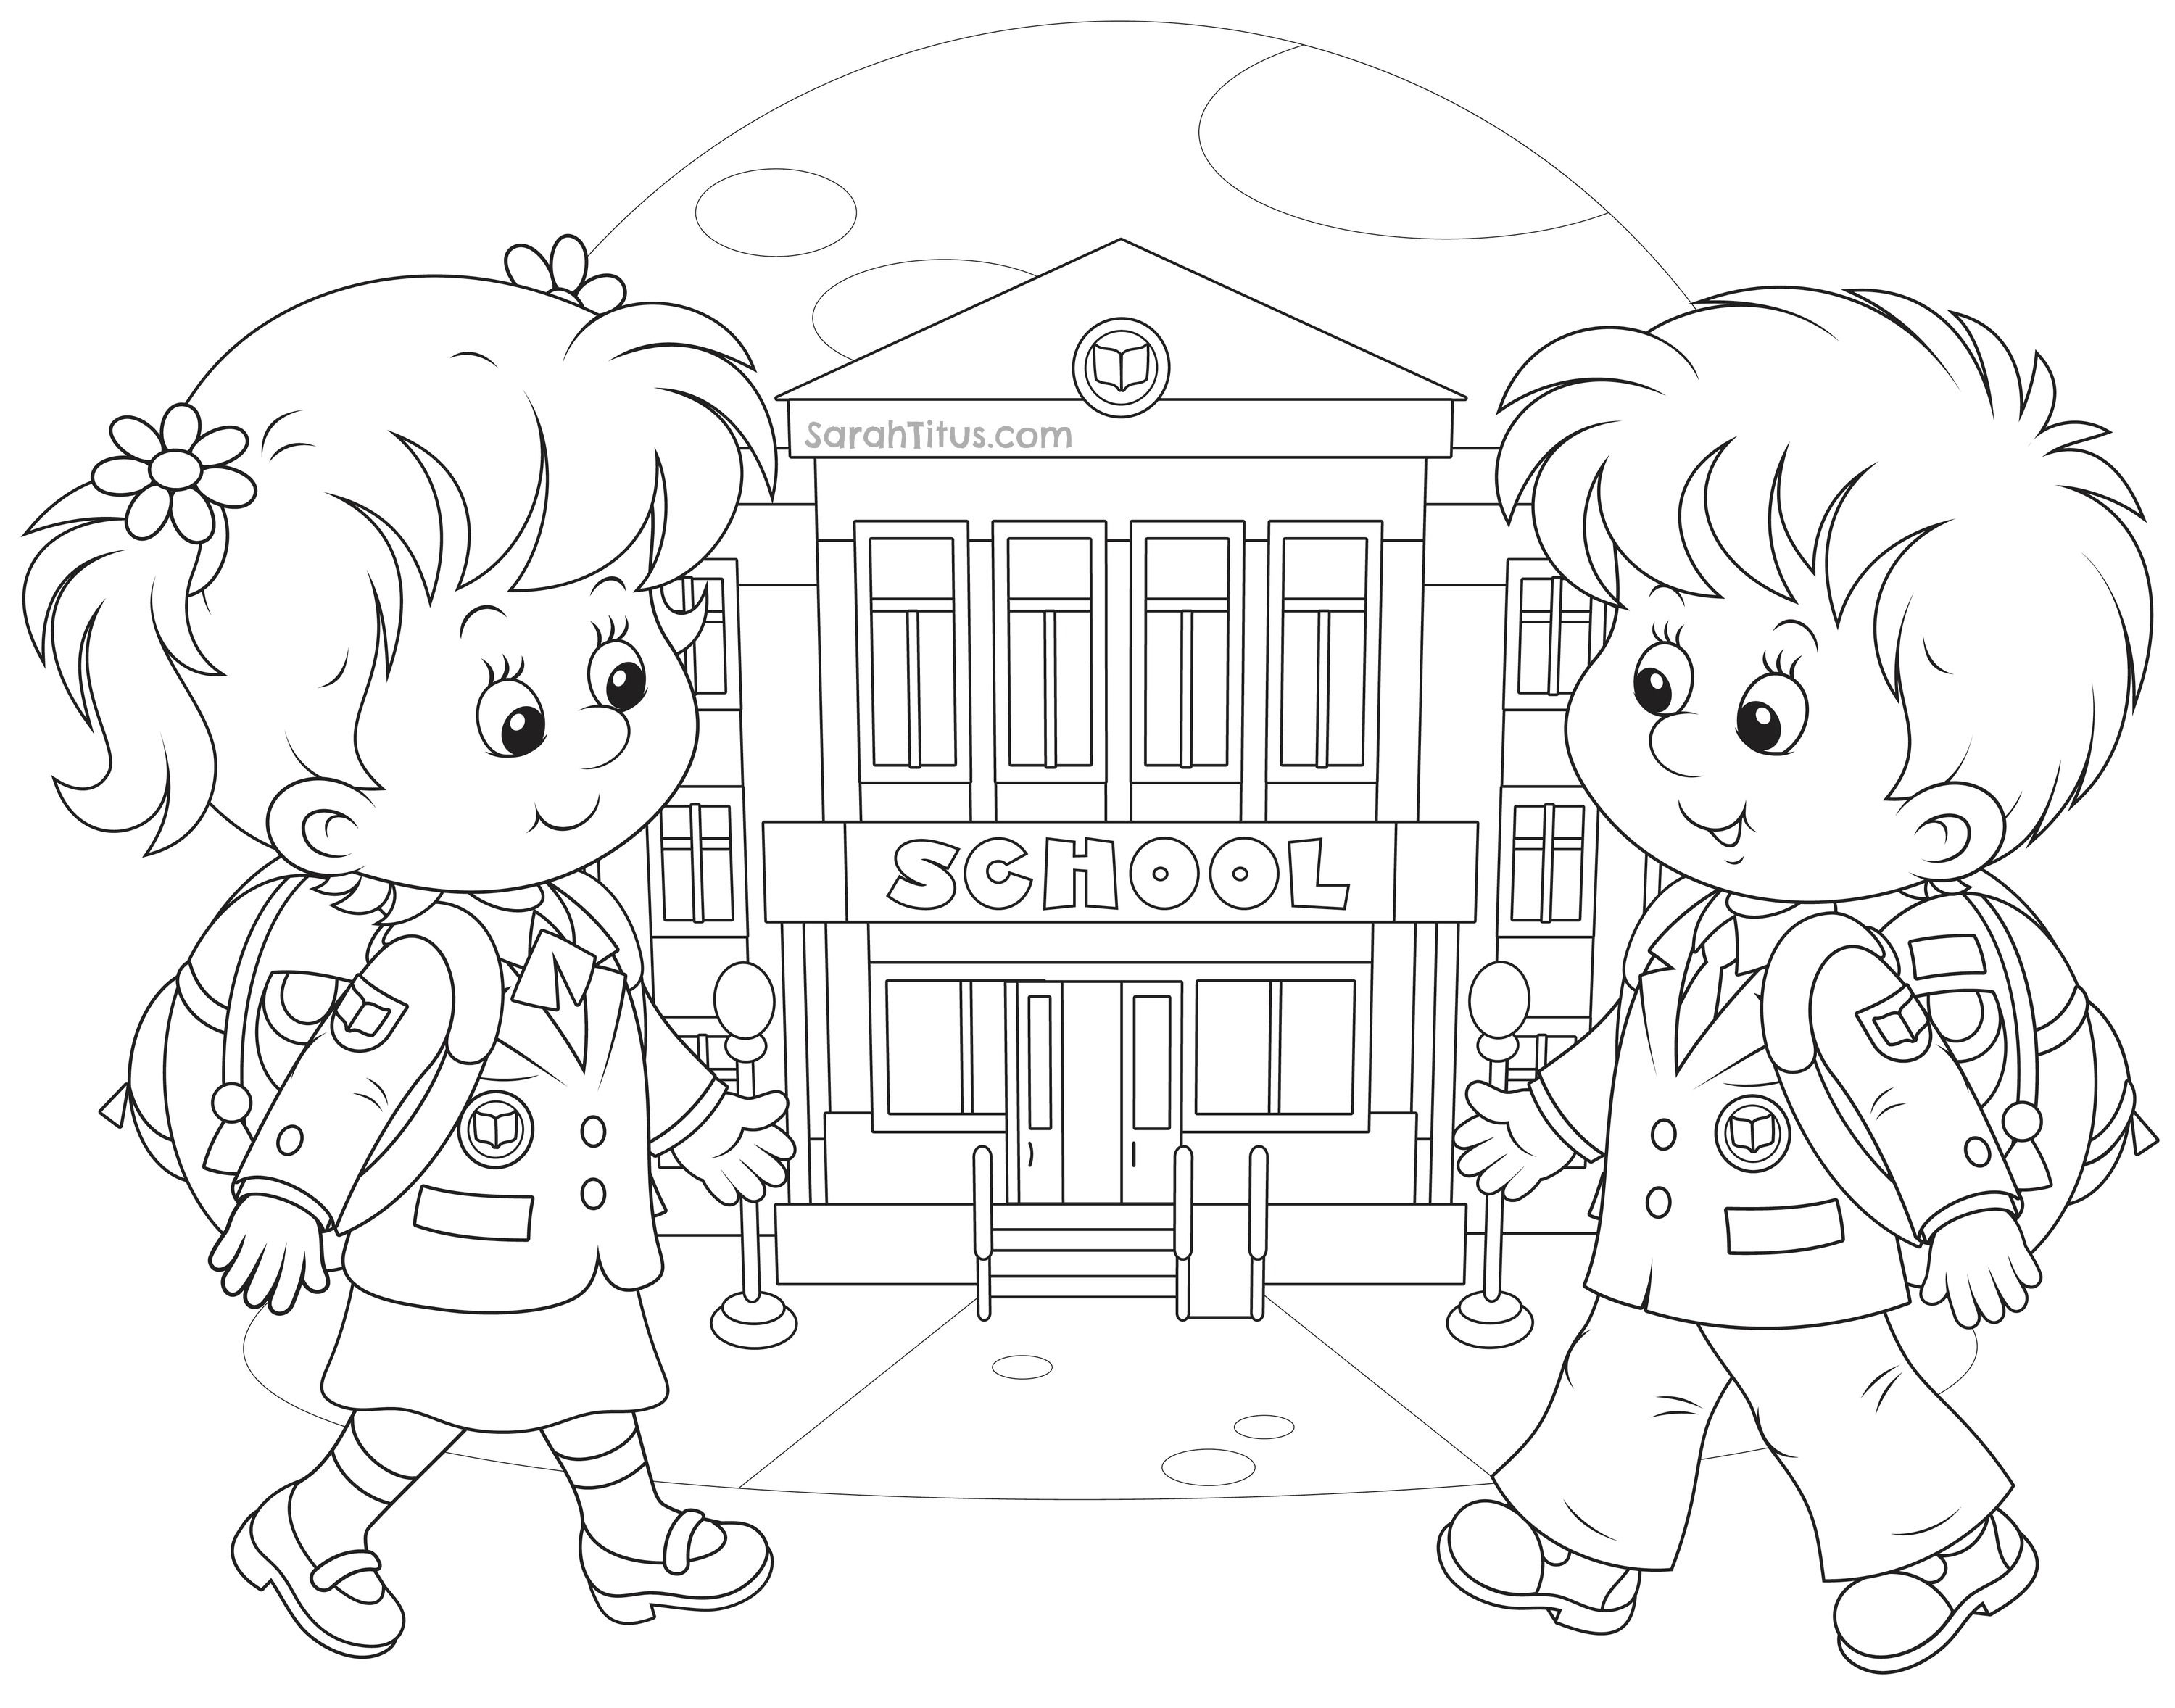 back to school coloring pages - Coloring Pages School